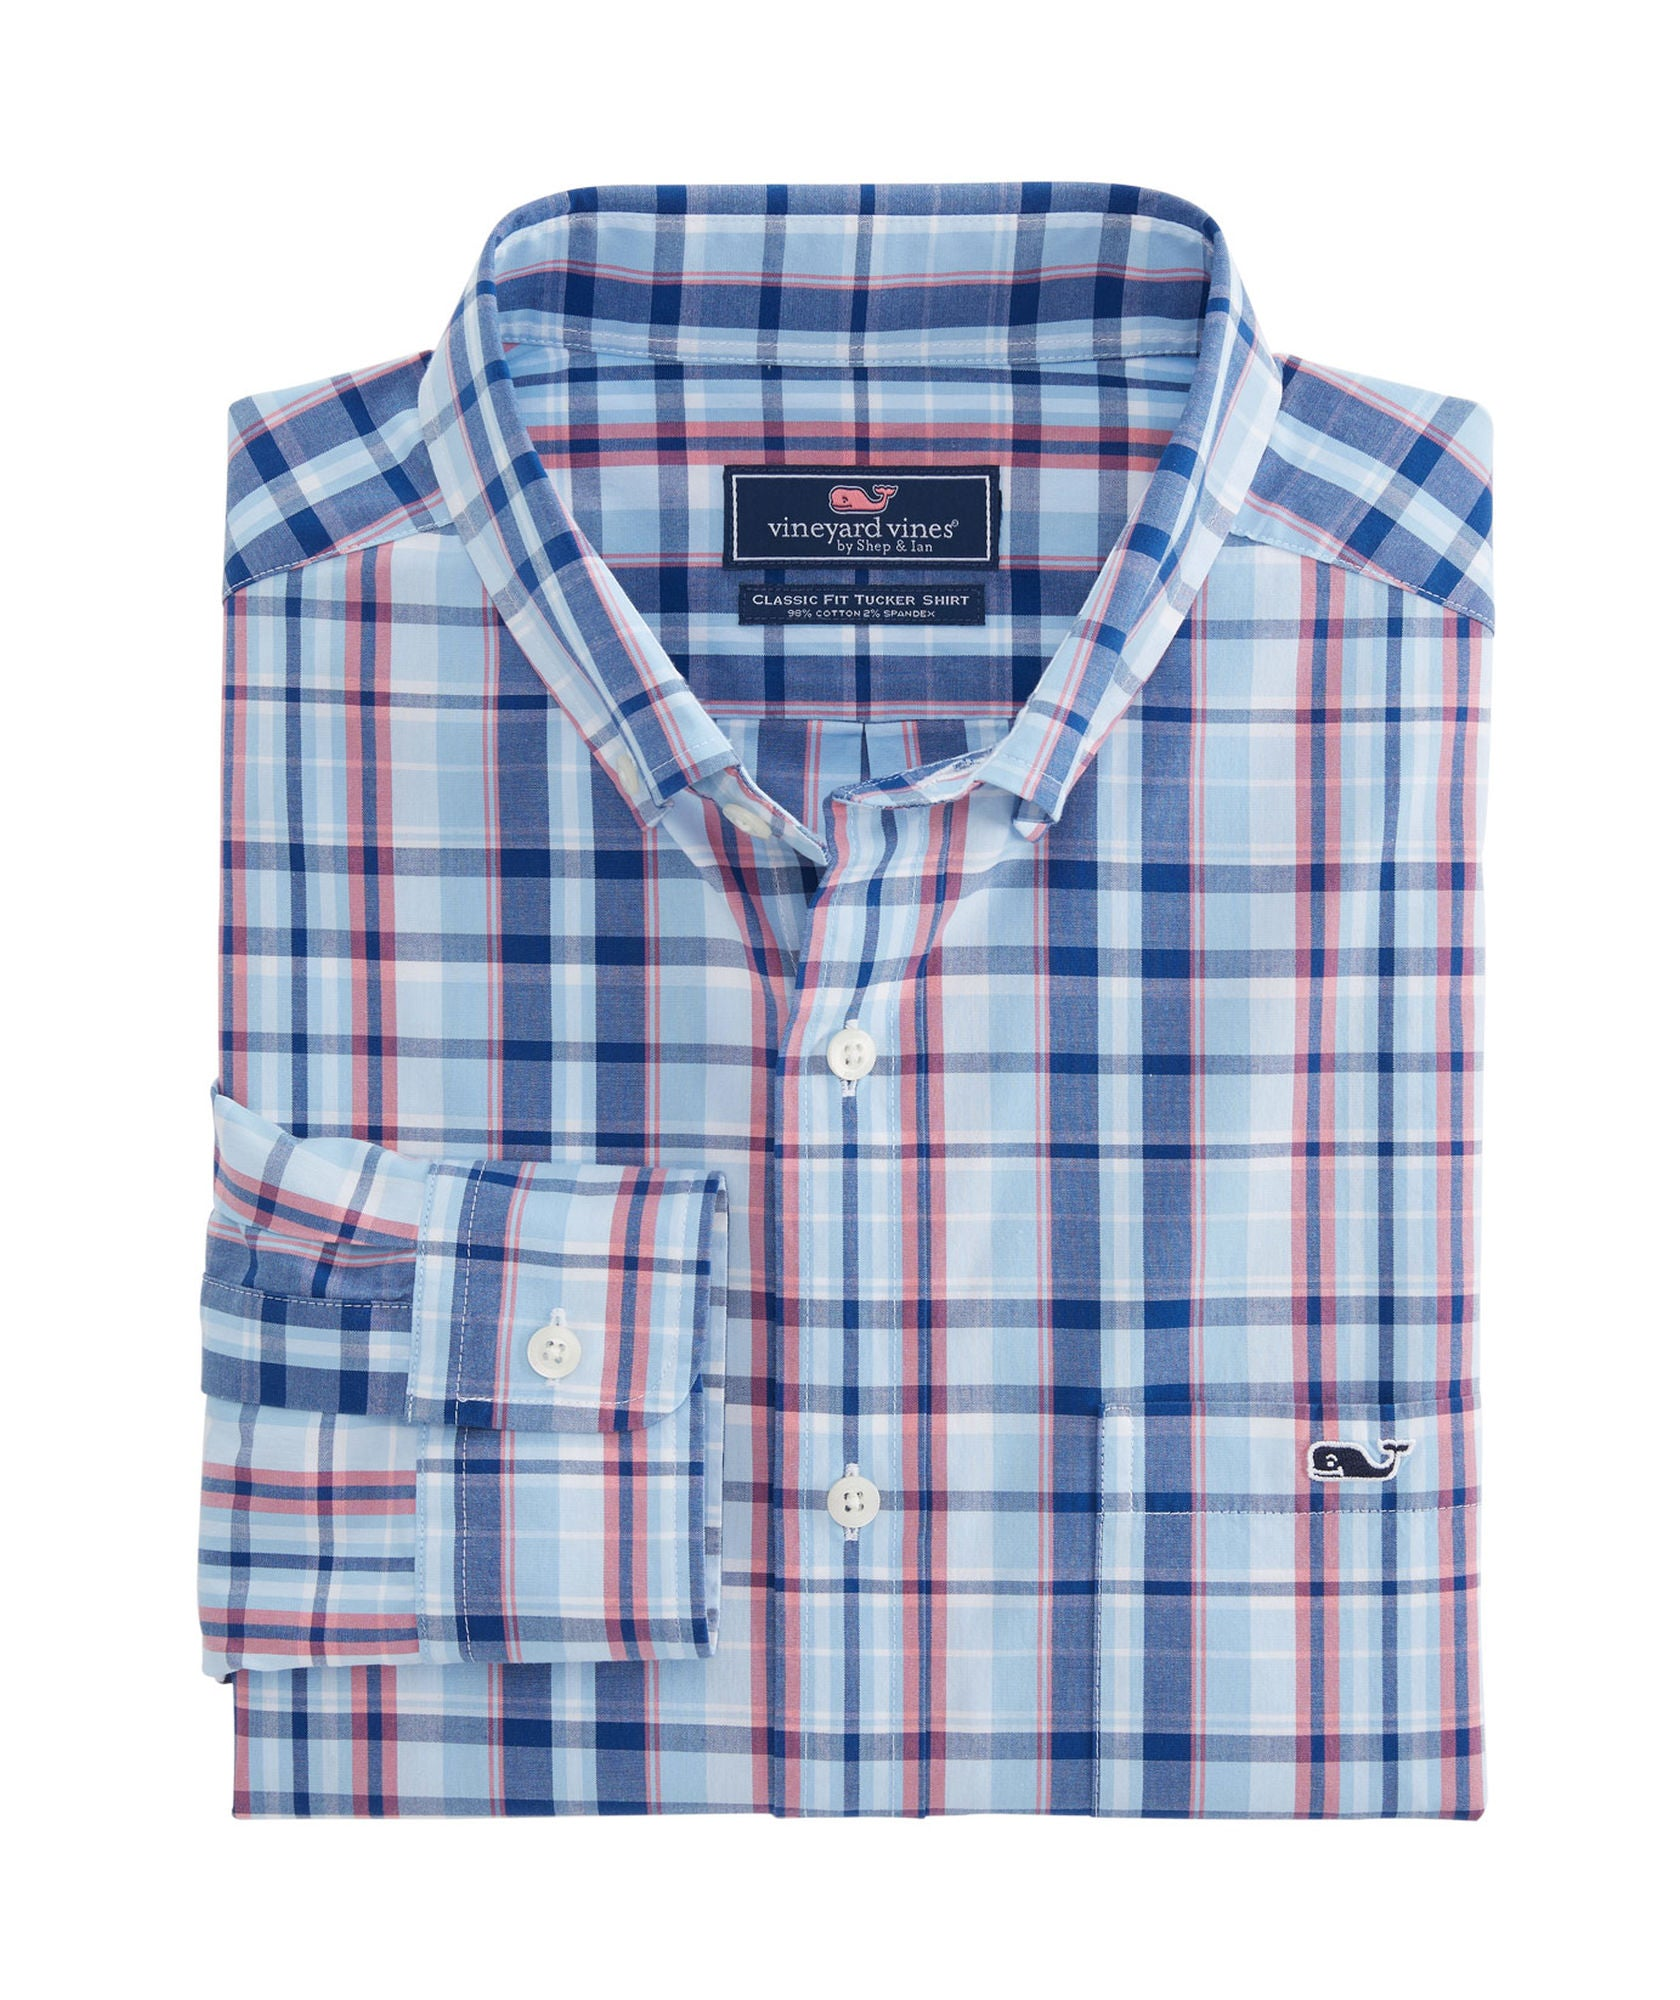 0bc81cc97c Vineyard Vines | Gibbs Hill Plaid Classic Tucker Shirt